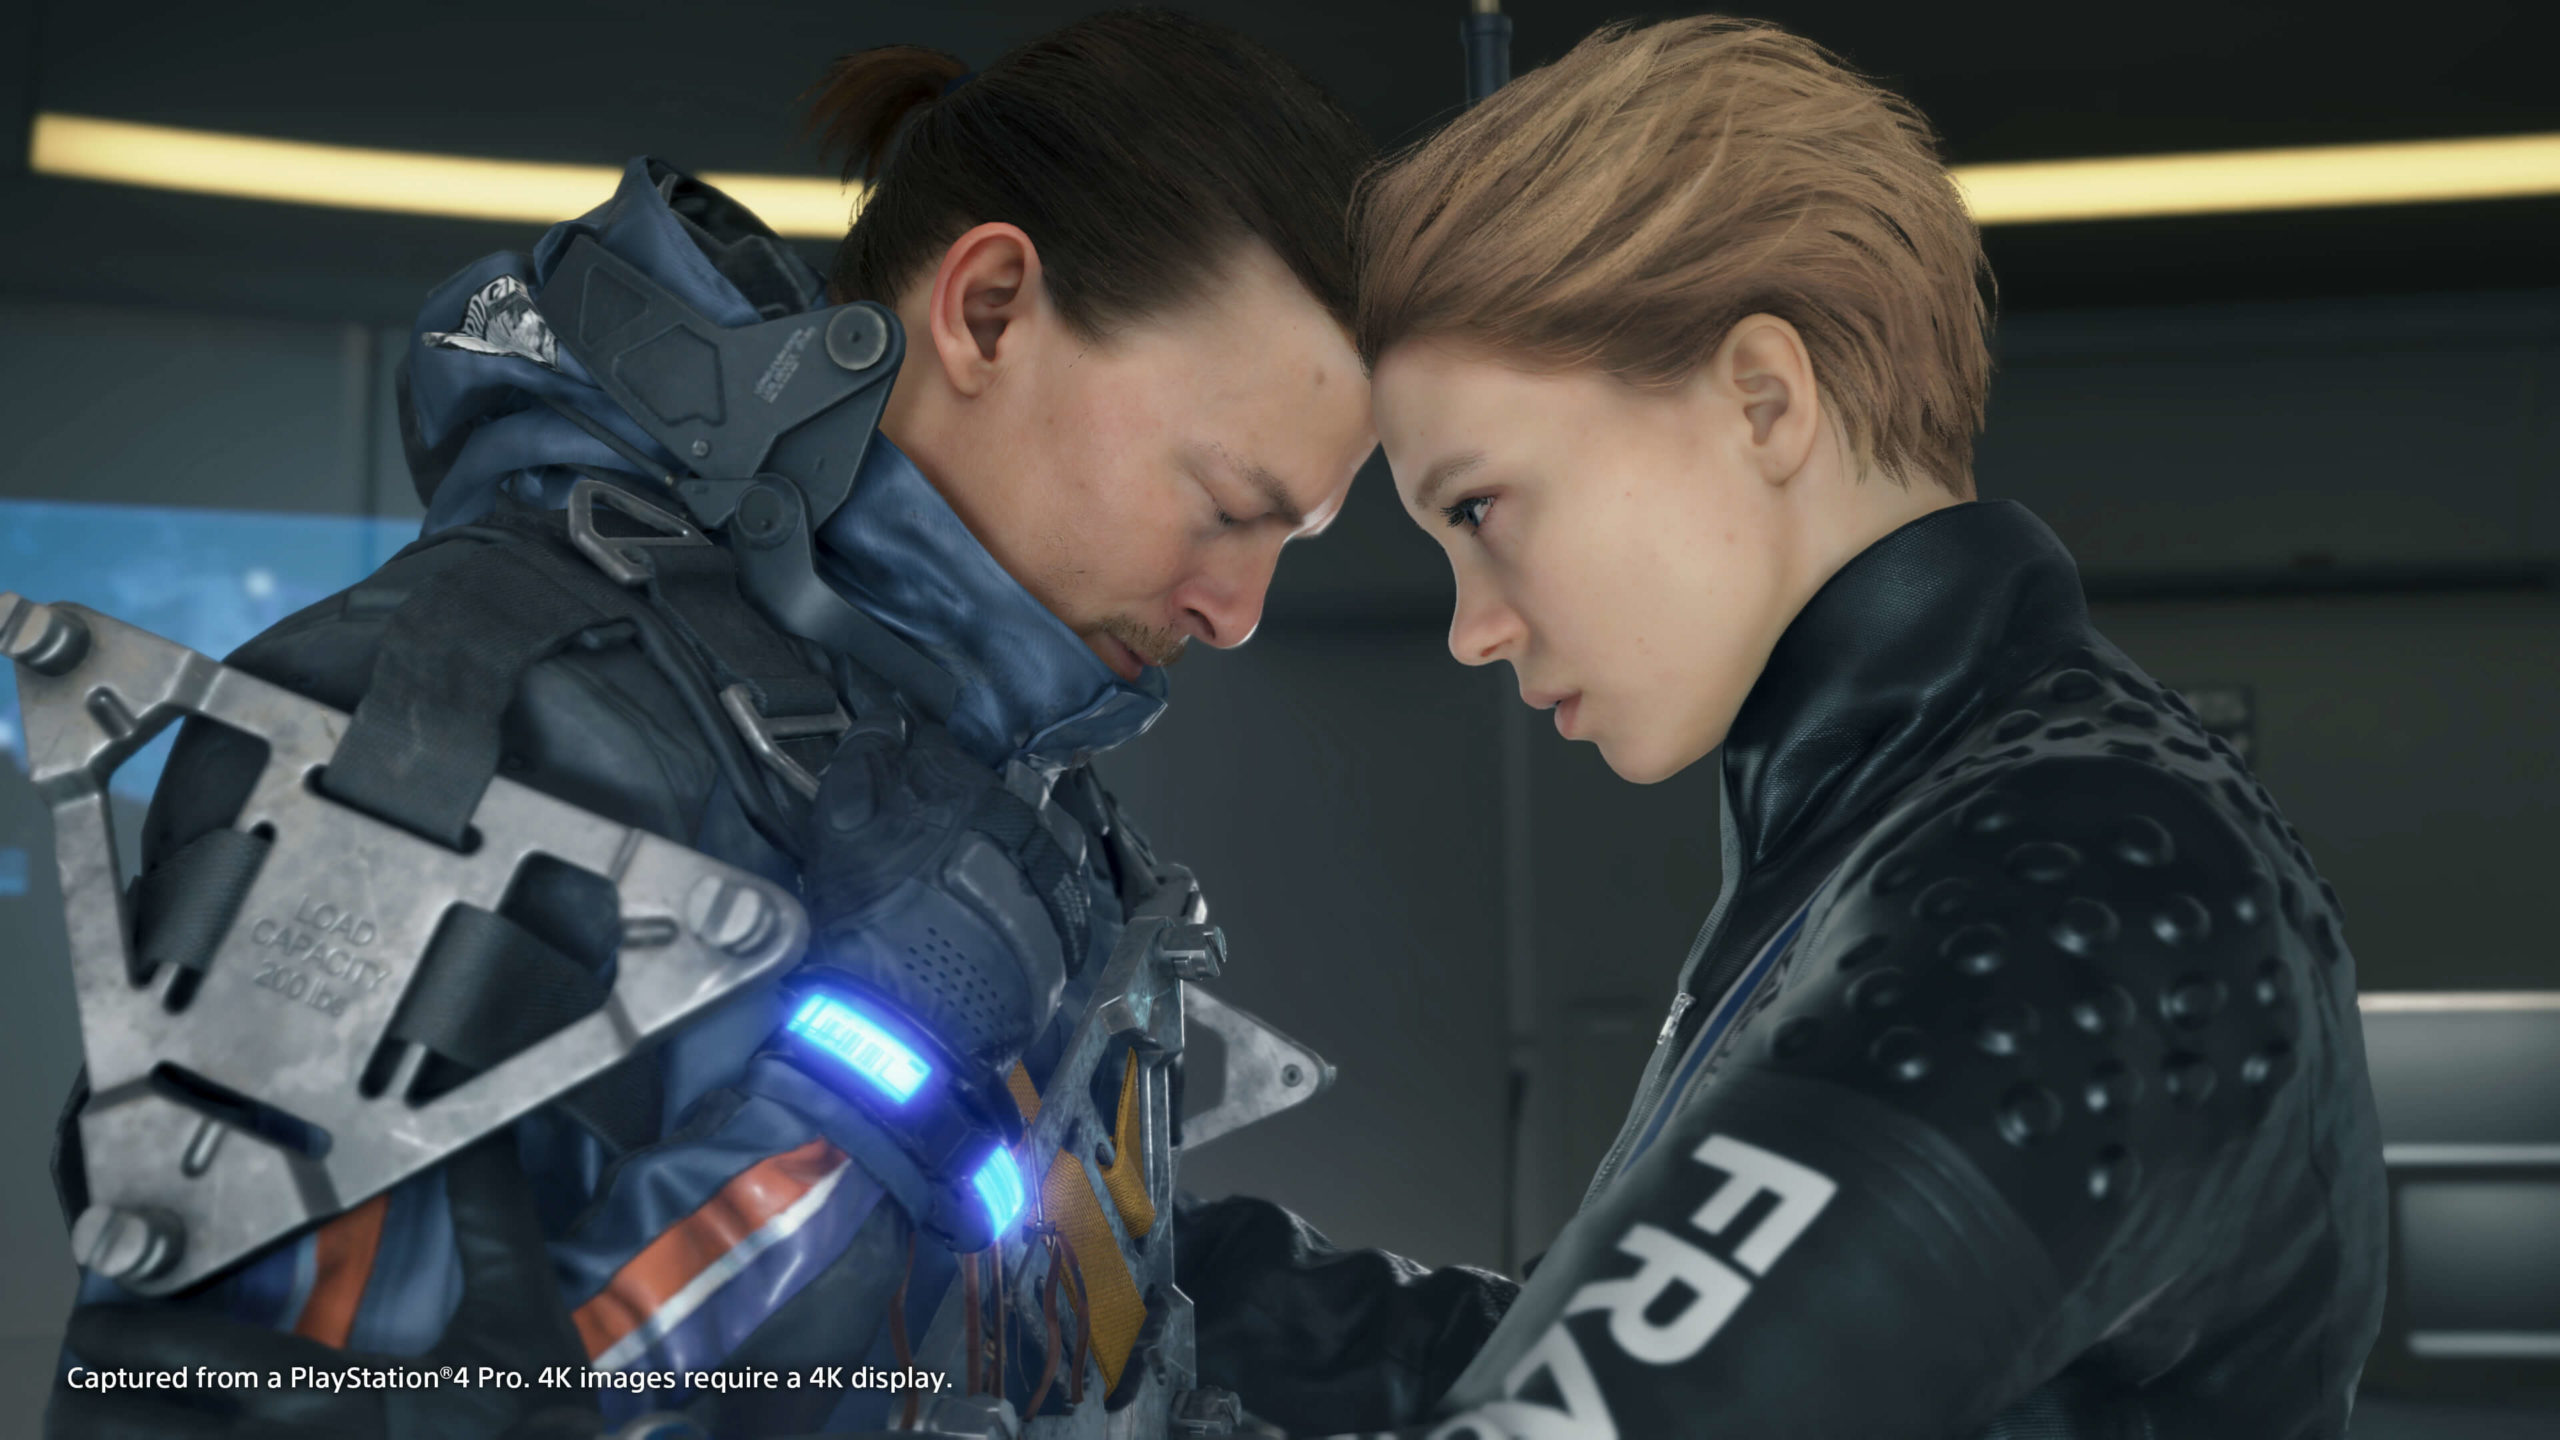 DEATH STRANDING TECH SPECS AND COMMUNITY TOP TIPS